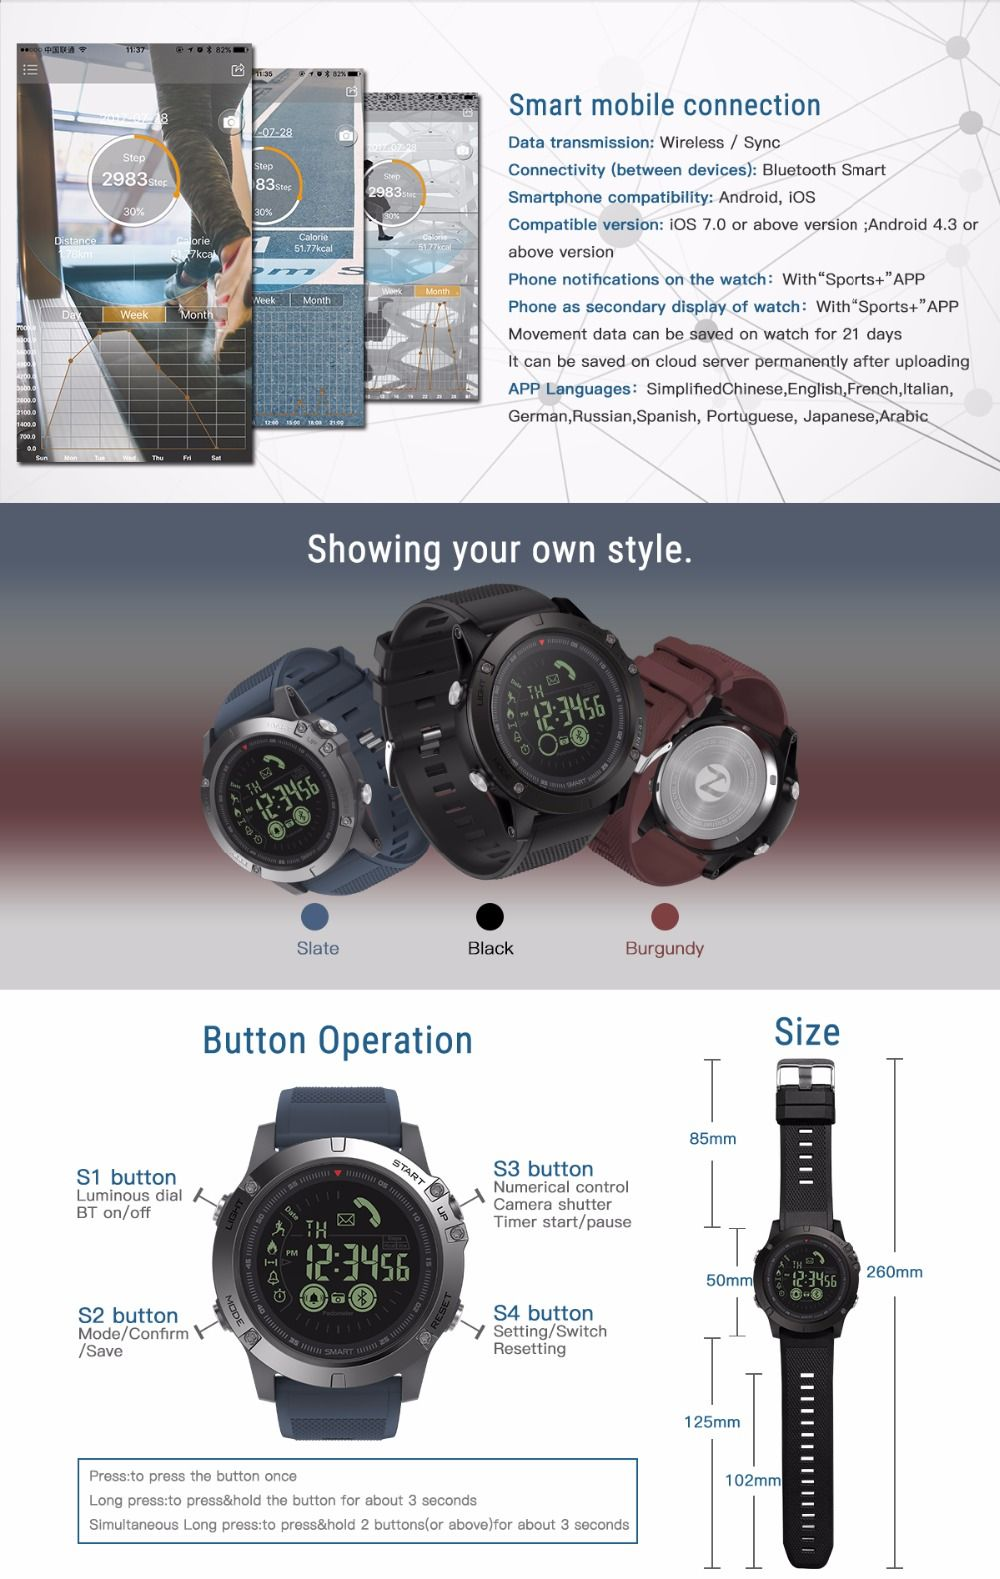 smartwatch and suppliers android com smart at rug manufacturers alibaba watch rugged phone newest waterproof showroom